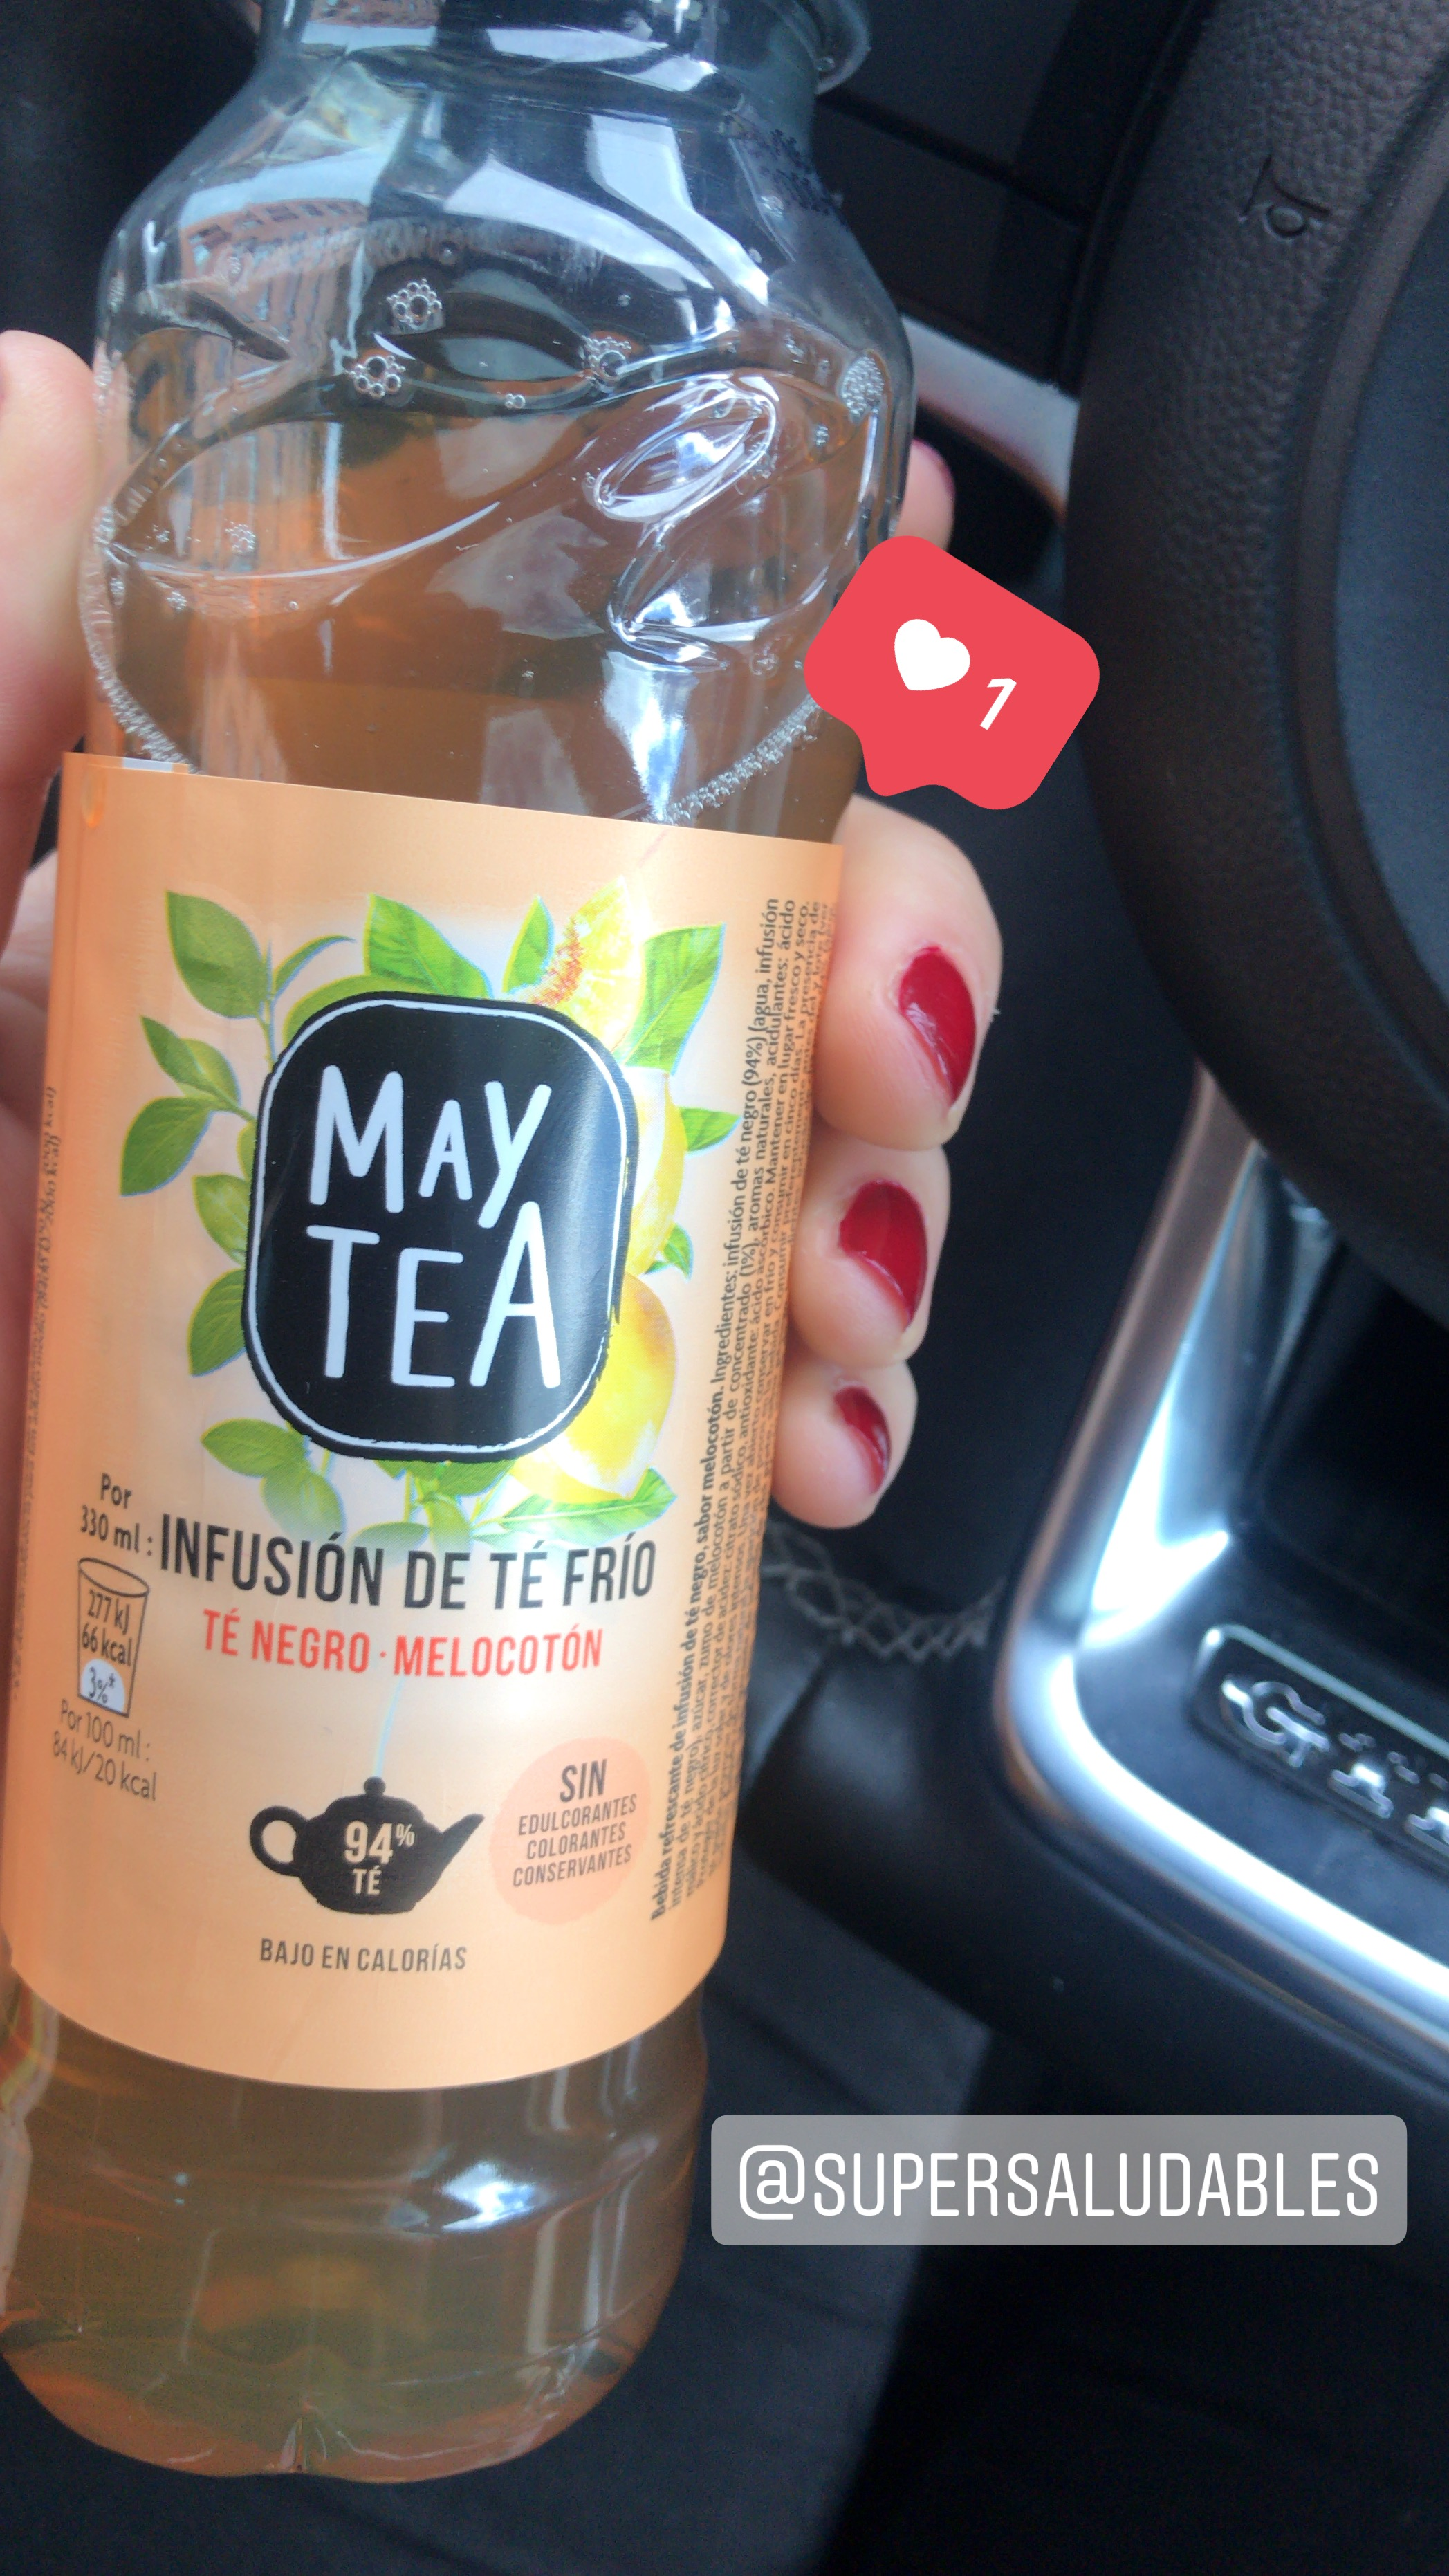 may tea té negro